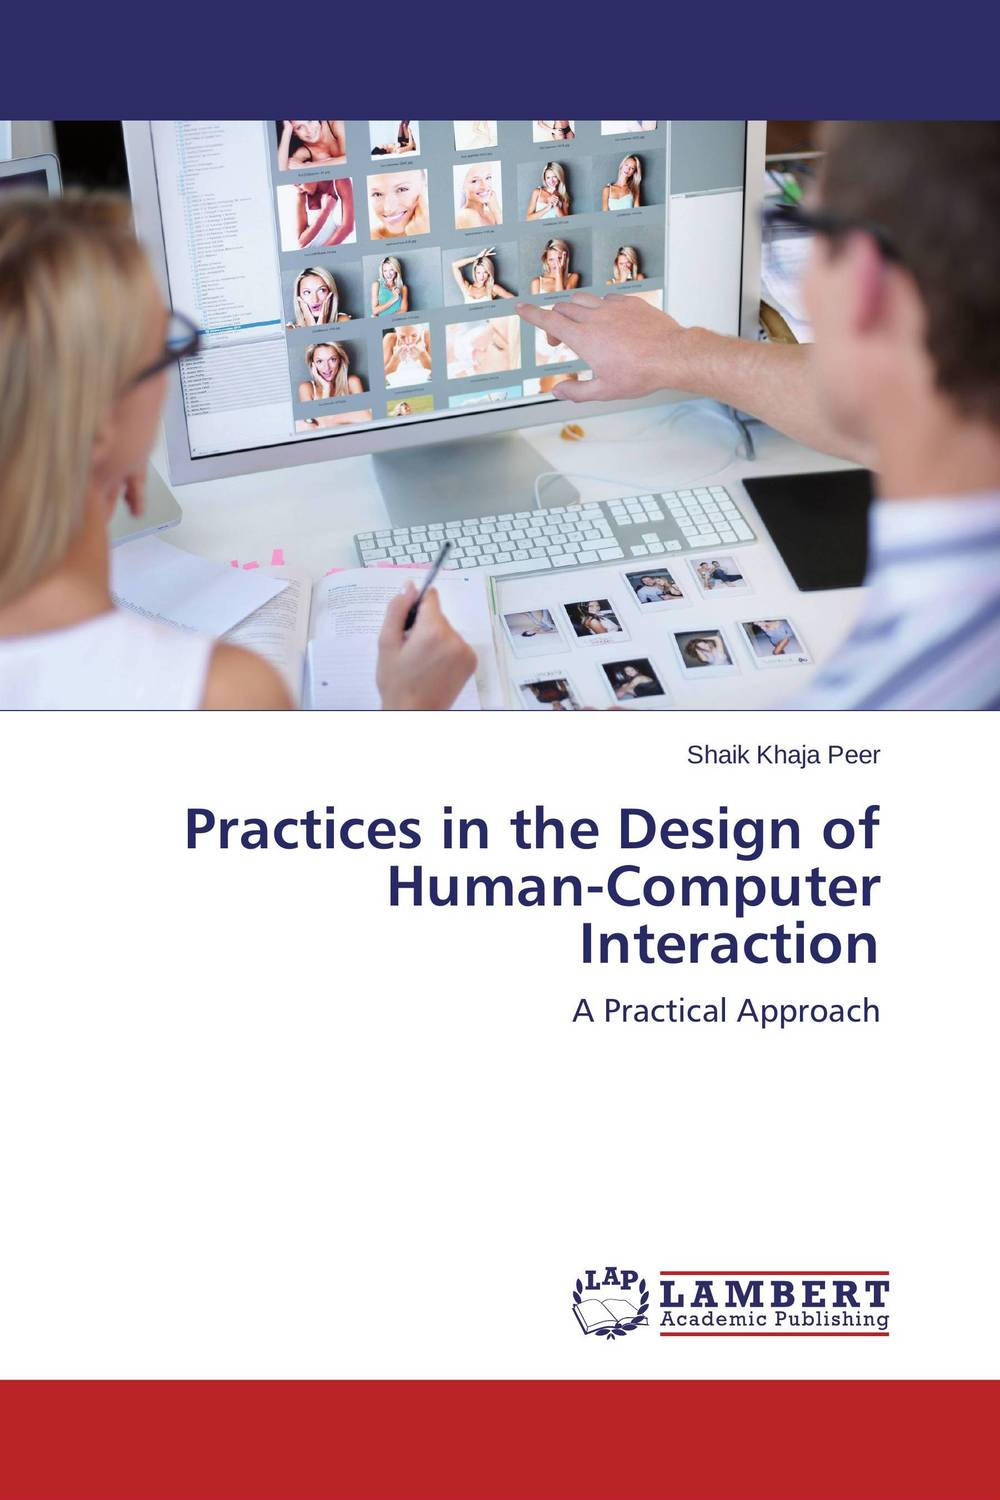 Practices in the Design of Human-Computer Interaction